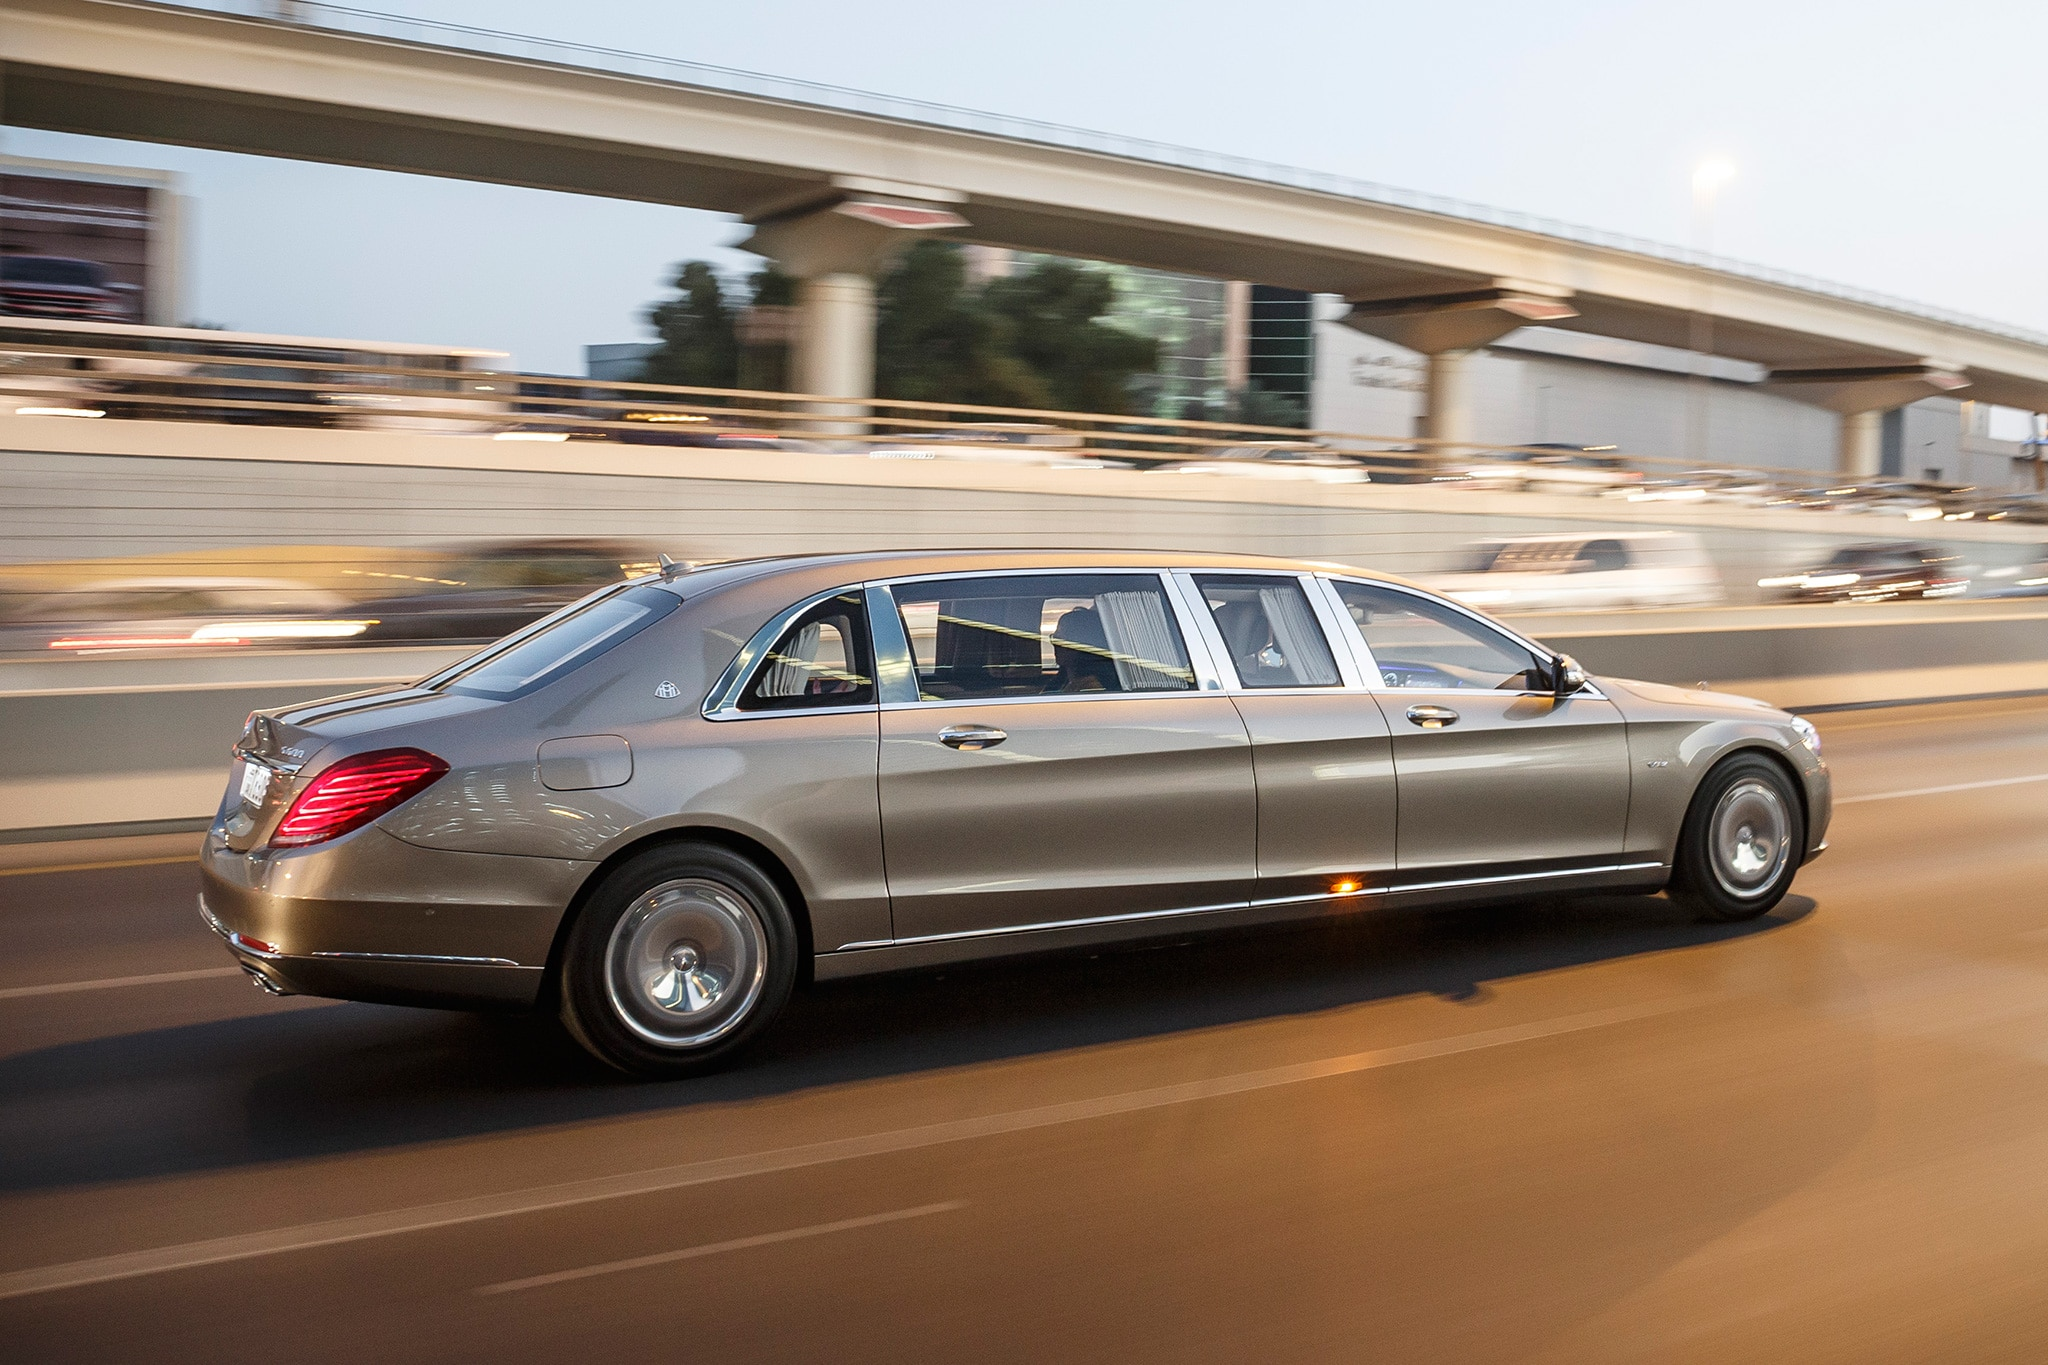 http://st.automobilemag.com/uploads/sites/11/2016/08/2016-Mercedes-Maybach-S600-Pullman-side-profile-in-motion-02.jpg